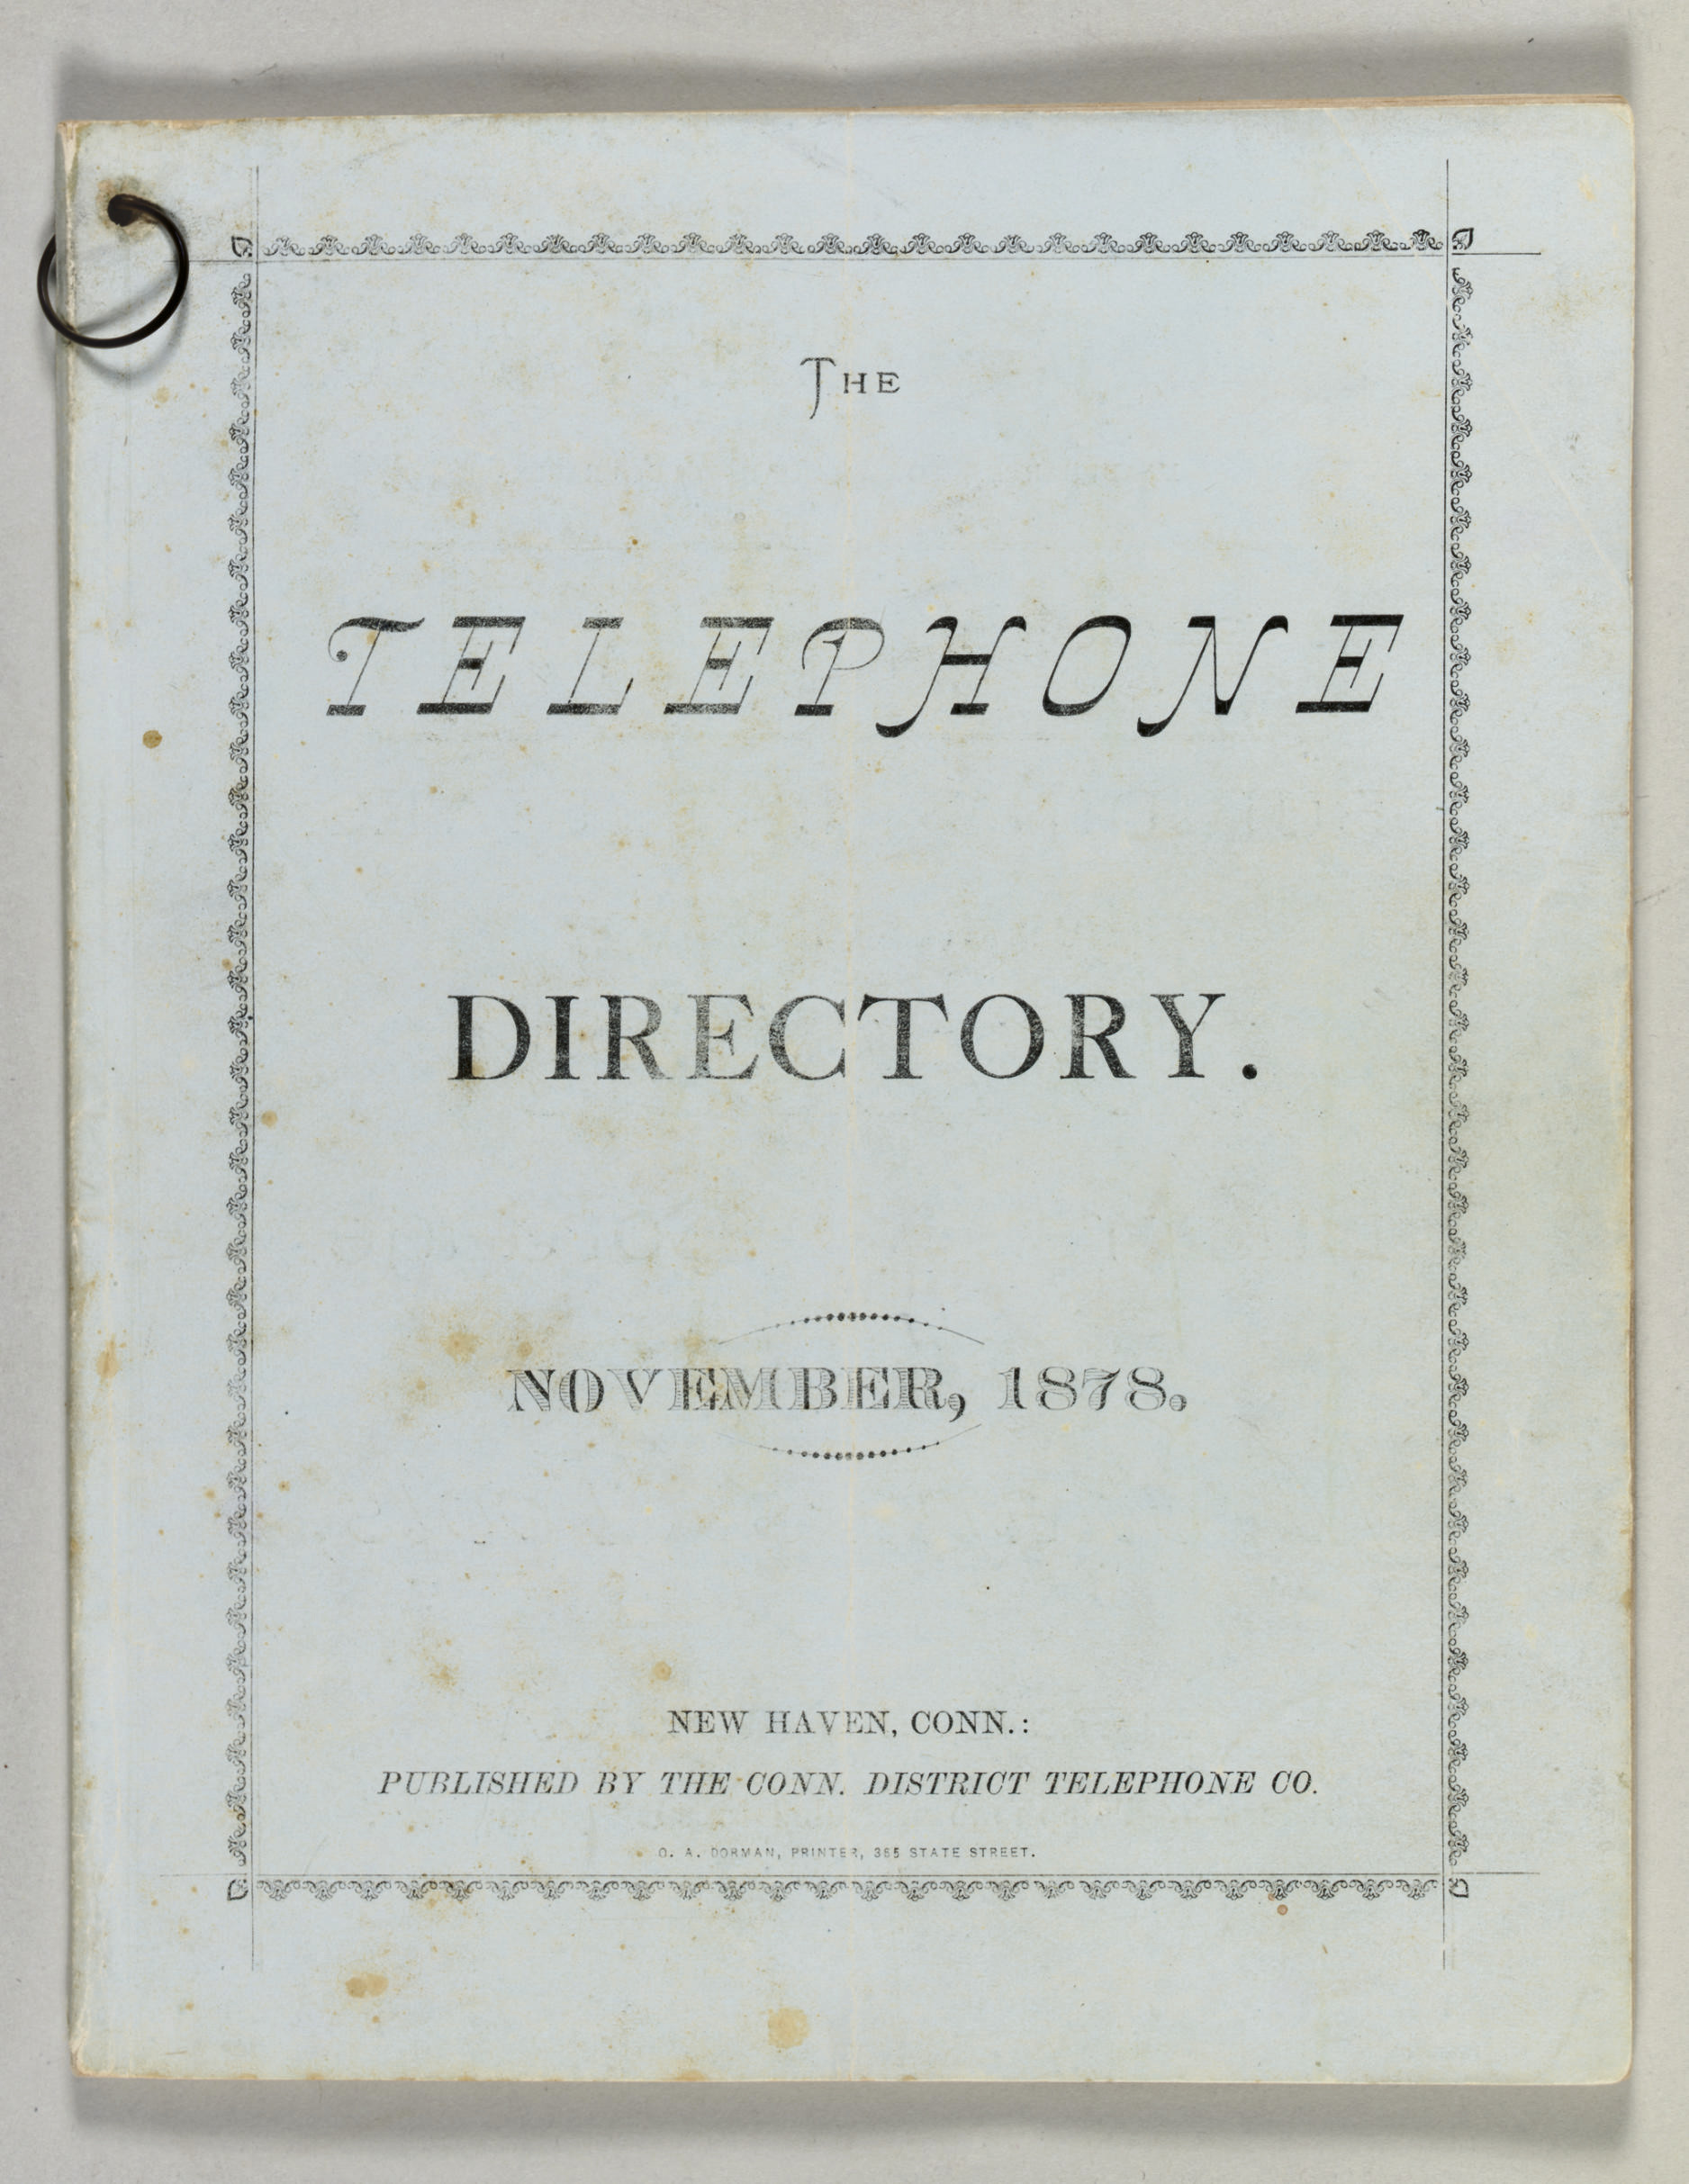 The Telephone Directory. [Volume 1, Number 1]. New Haven, Connecticut: [Printed by O.A. Dorman for] The Conn. District Telephone Co., November 1878.